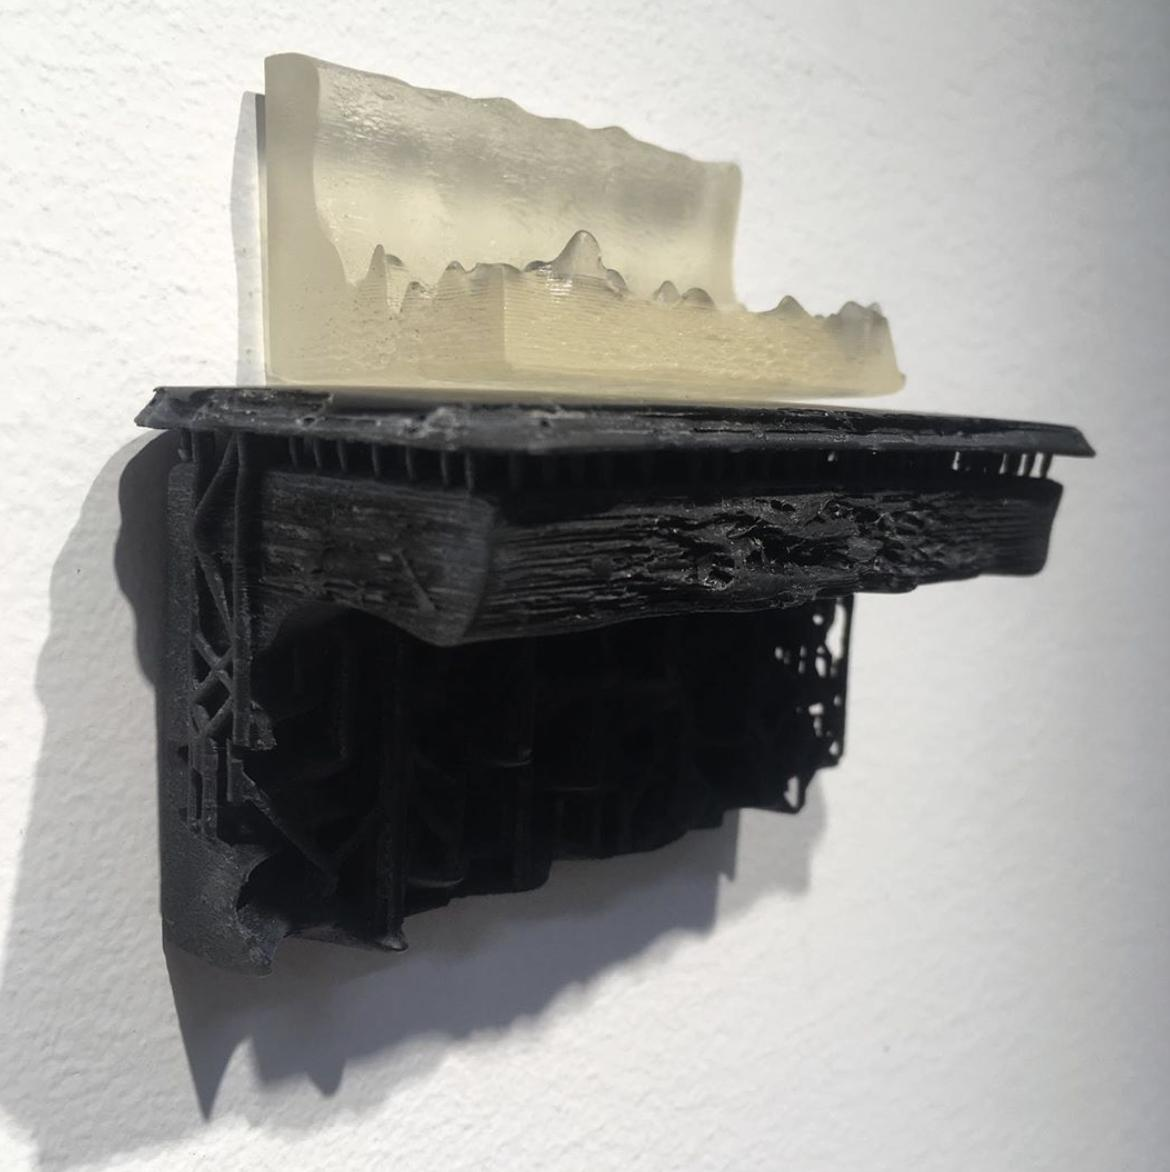 A clear representation of 3D printed waves rests on a black 3D printed mantle.